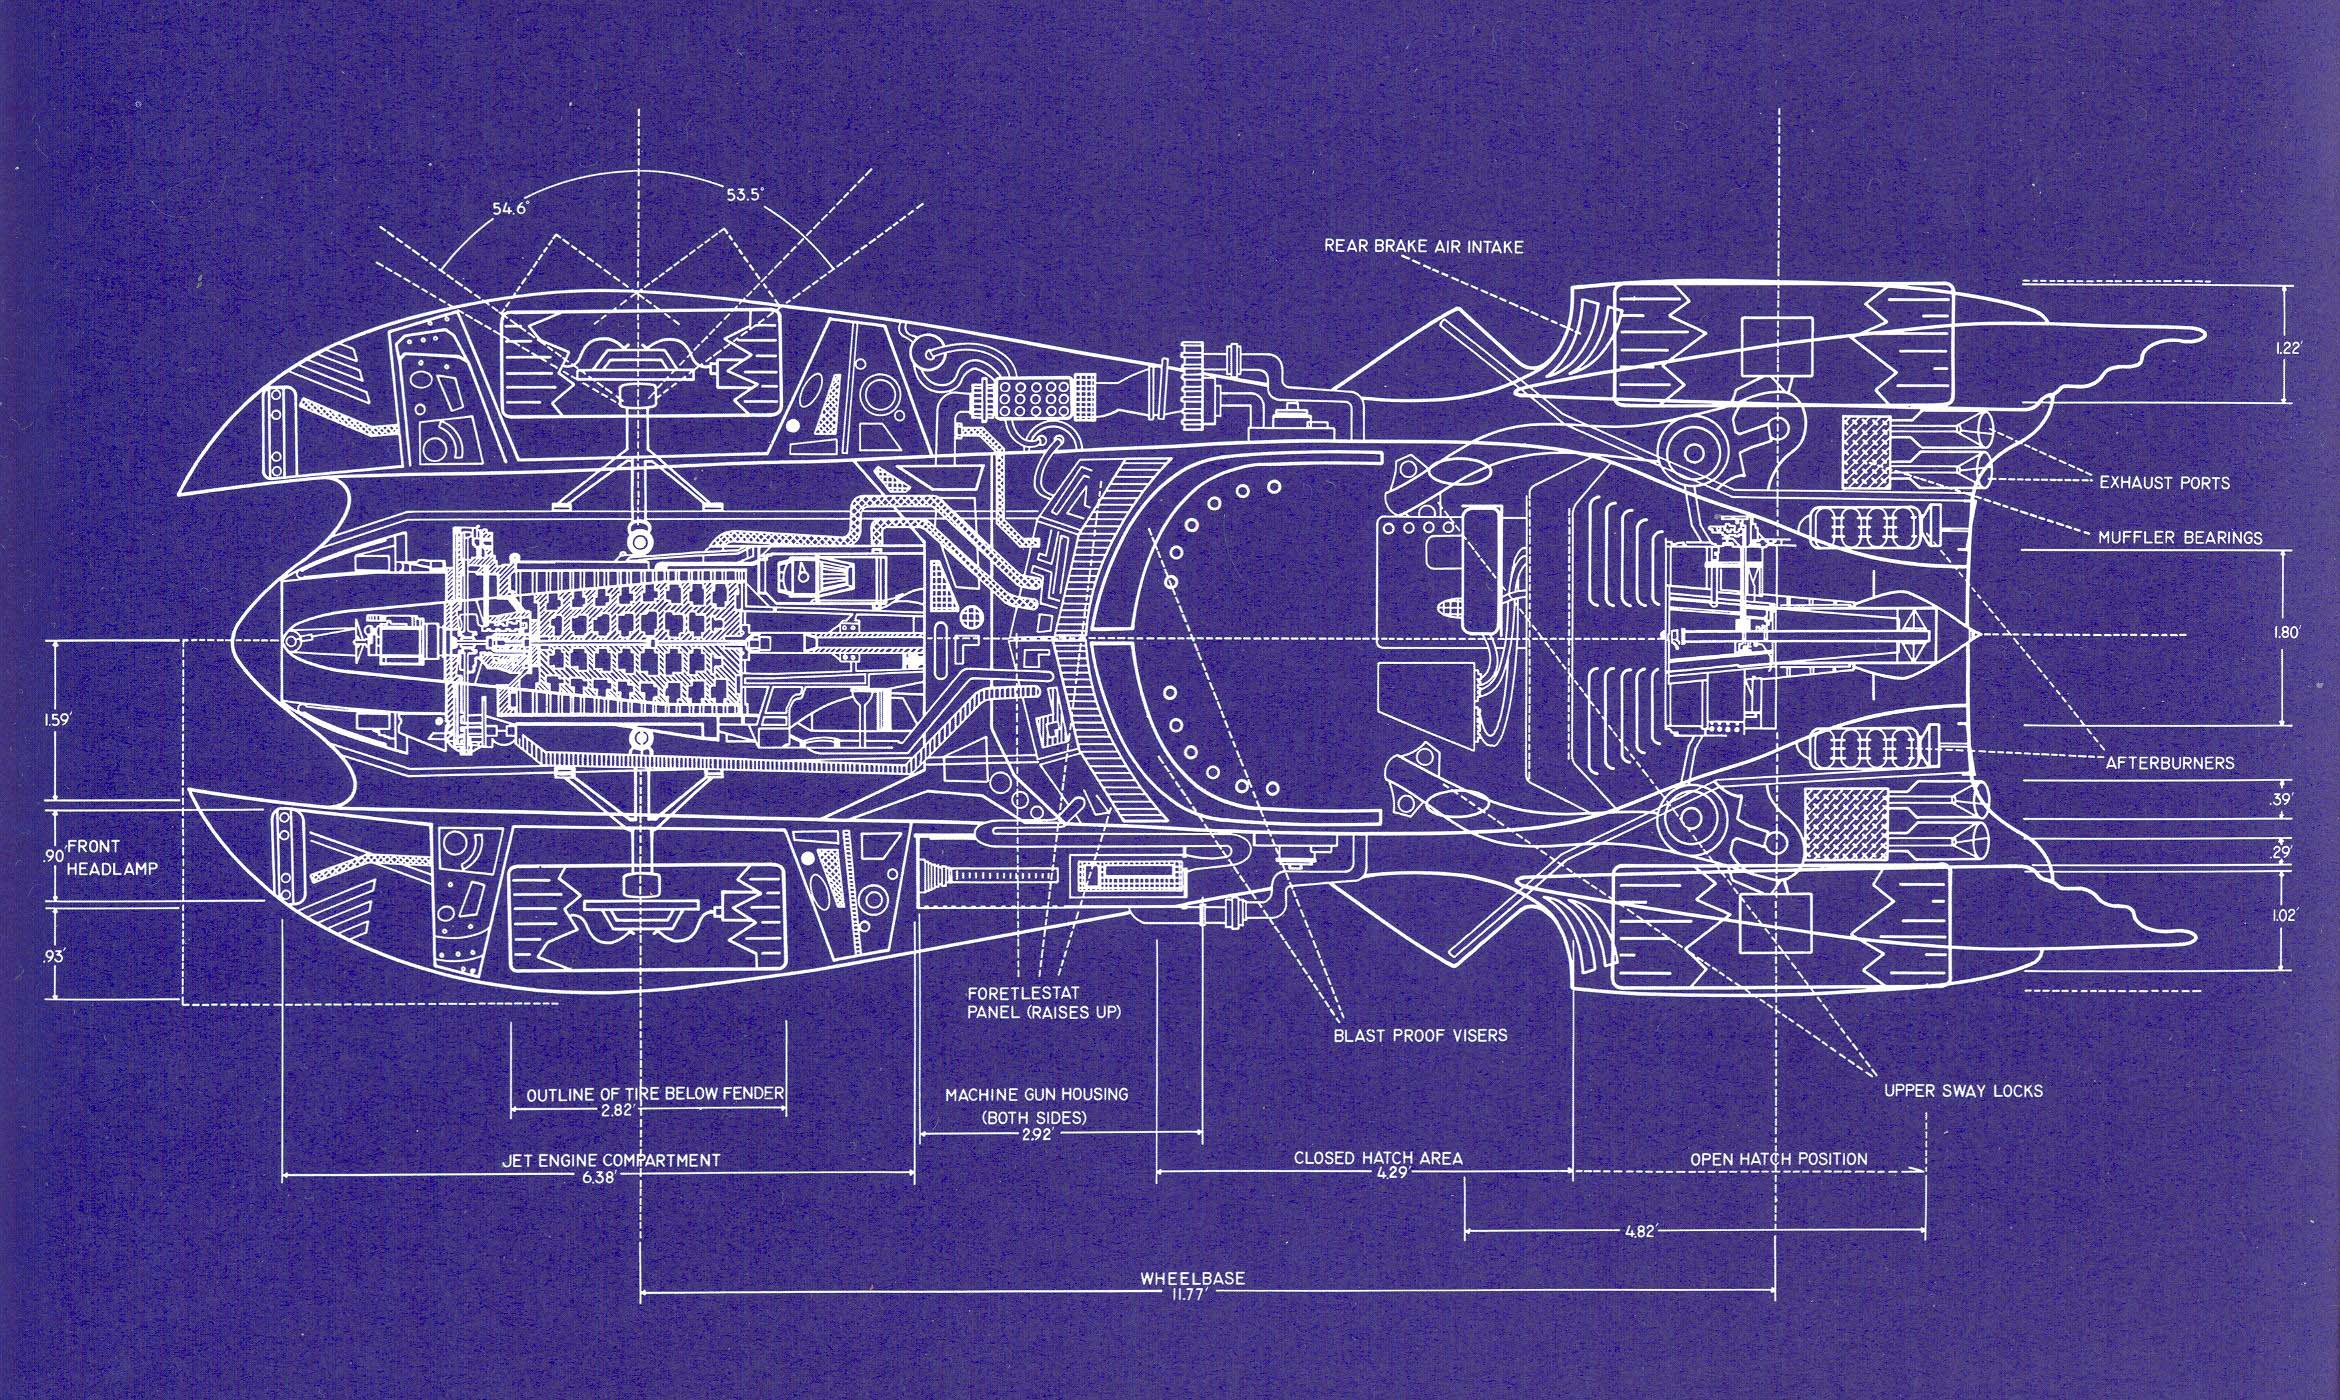 Build your own 1989 batmobile using these blueprints autoevolution blueprints 1989 batmobile blueprints malvernweather Choice Image